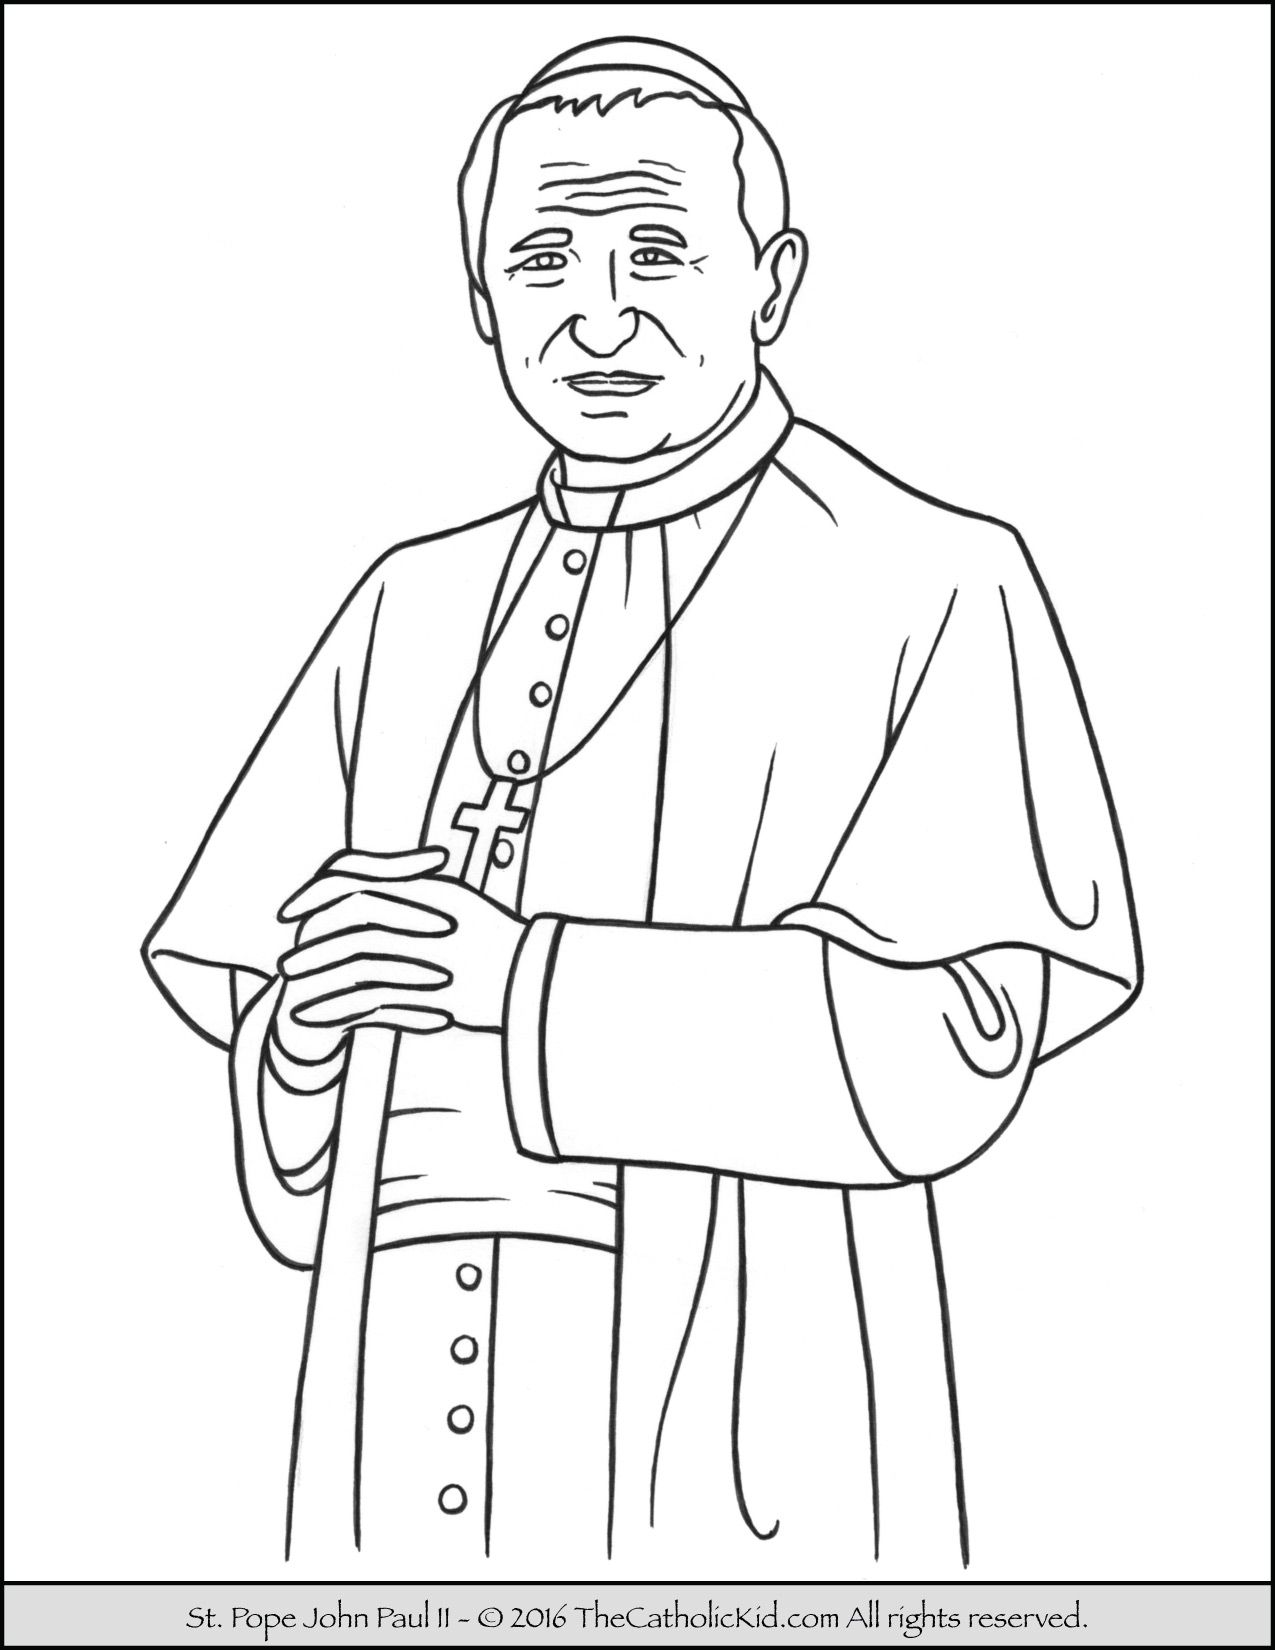 Saint Pope John Paul Ii Coloring Page Thecatholickid Com Pope